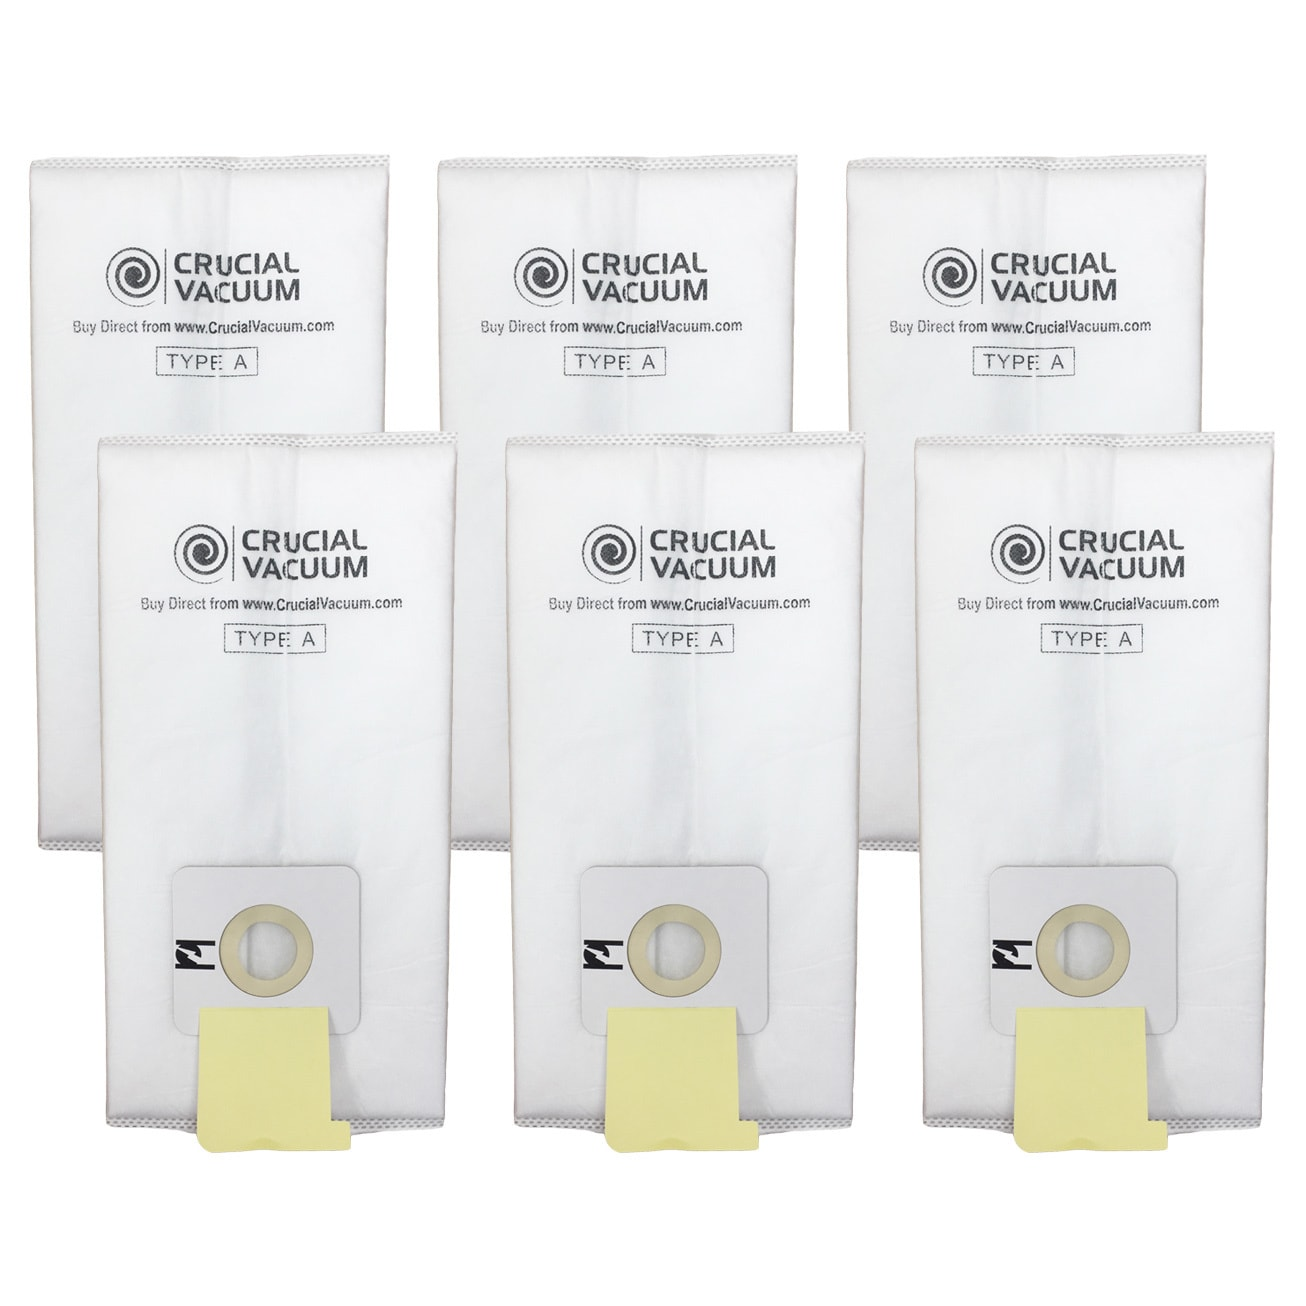 Crucial Simplicity White Cotton Vacuum Bags (6 Pack) (vac...